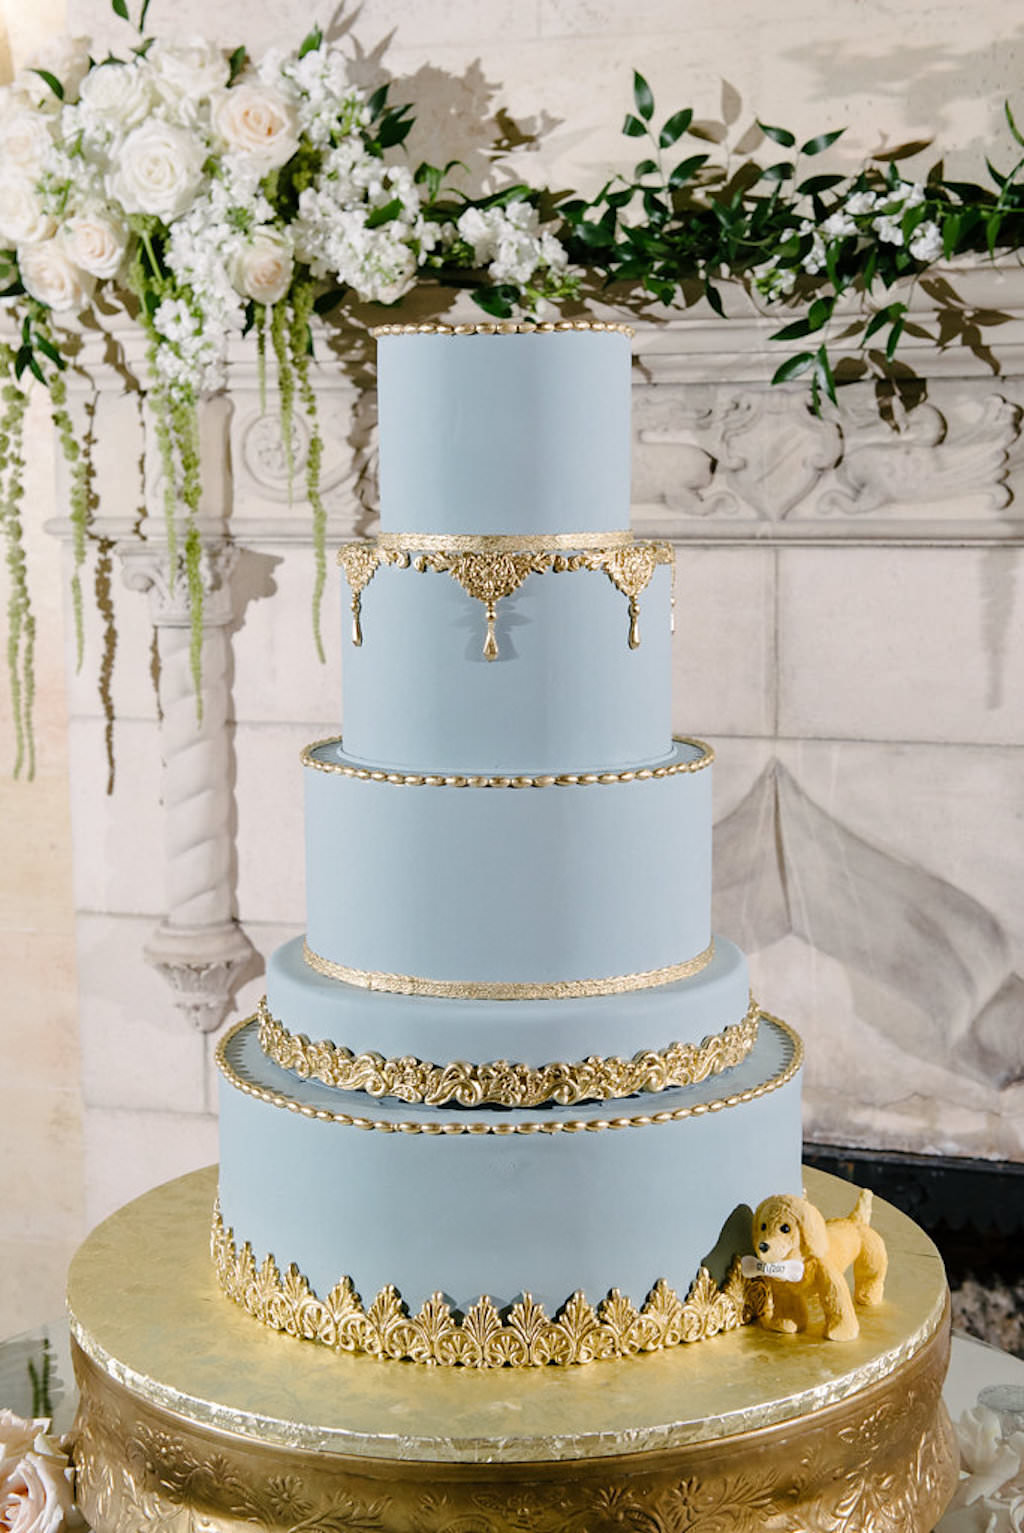 Elegant Powder Blue Five Tier Round Wedding Cake with Gold Details on Cake Stand with Dog Cake Topper and White Florals with Greenery